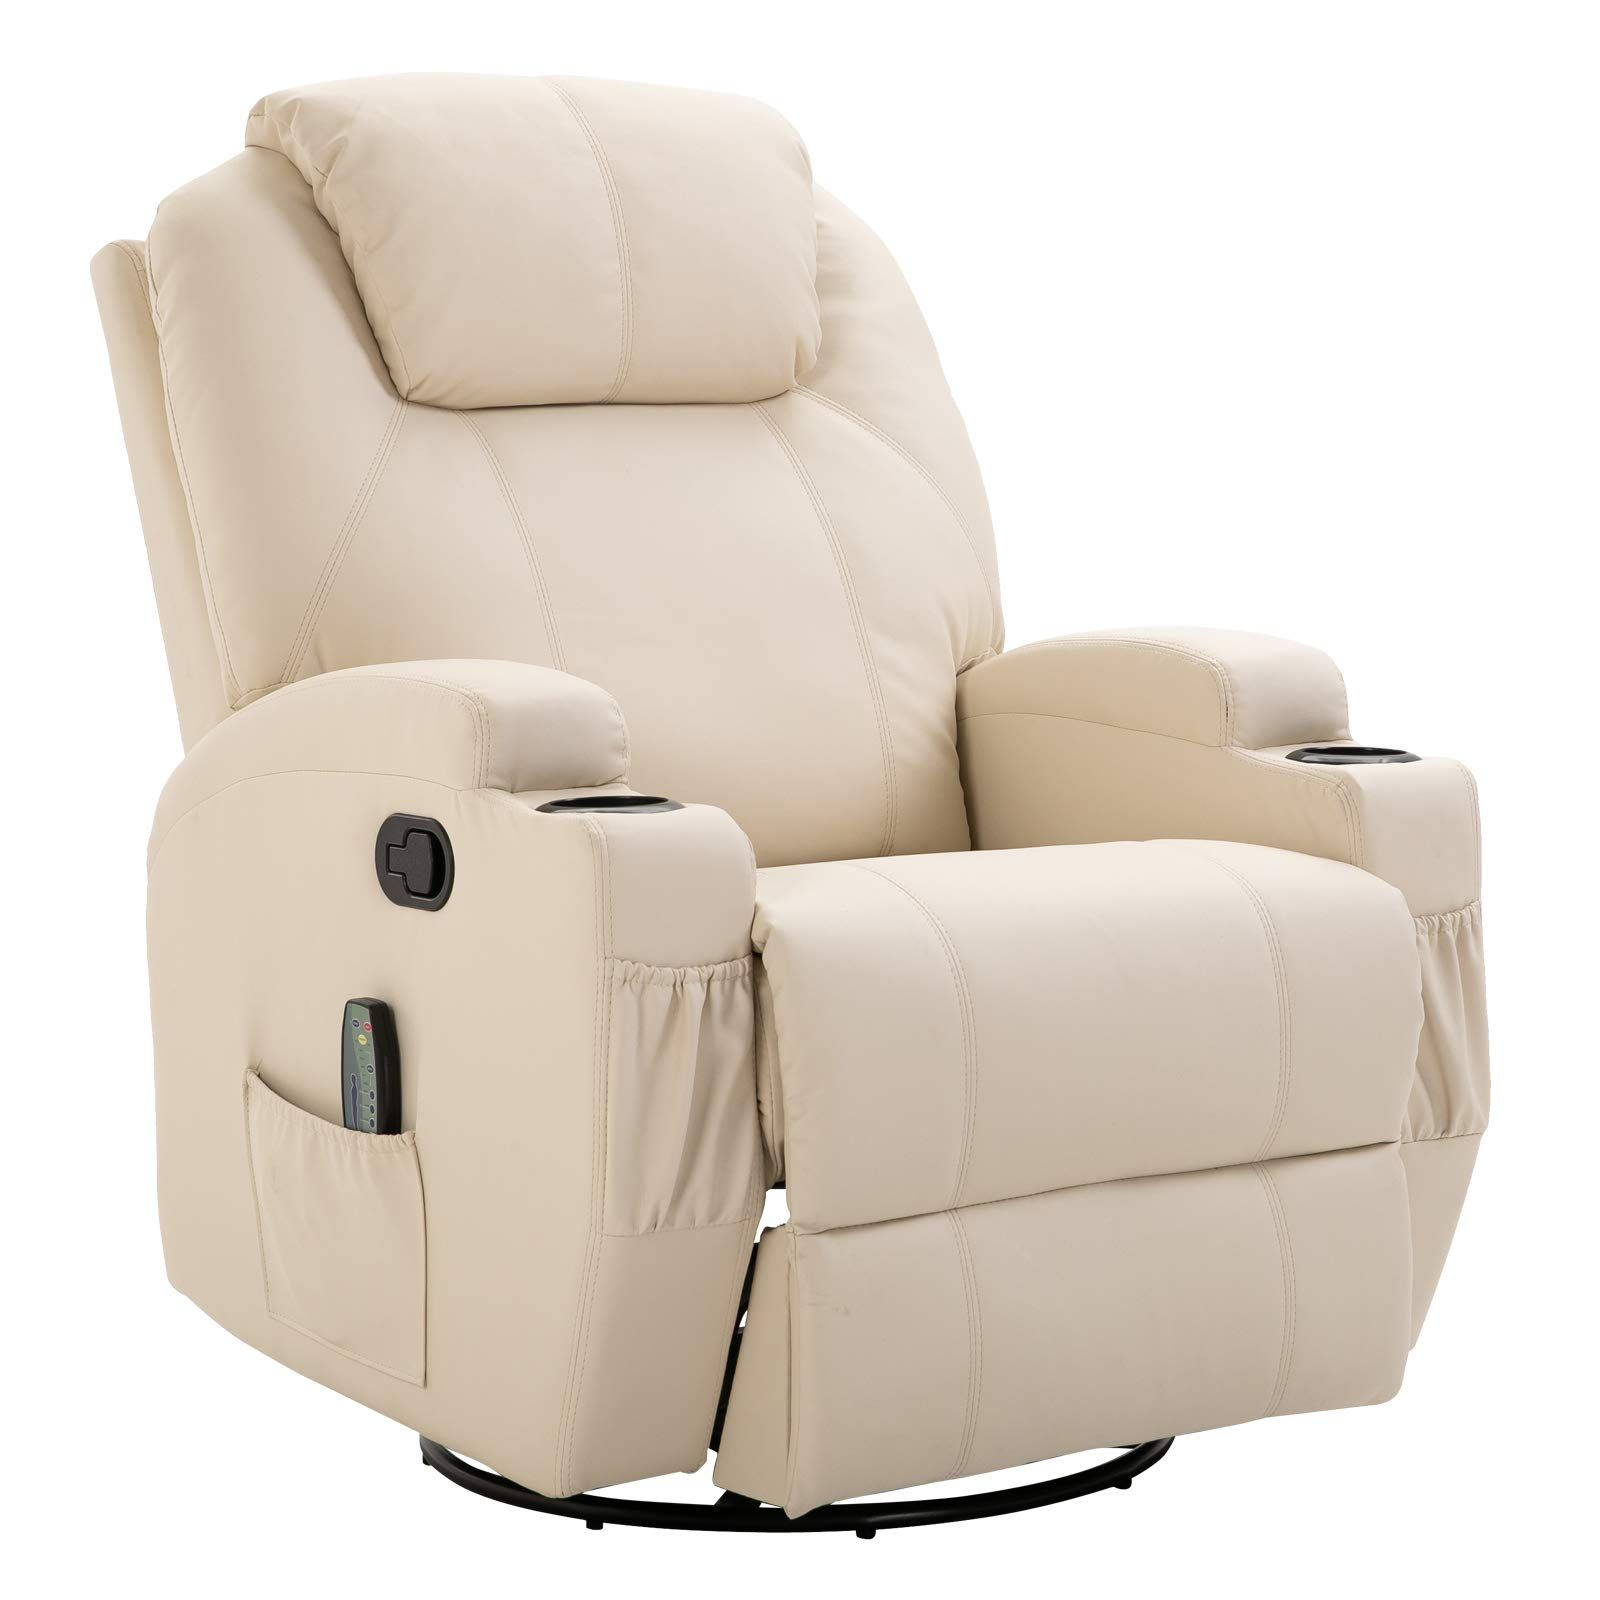 Homcom Faux Leather Heated Vibrating Recliner Chair With Remote Cream White In 2020 Recliner Chair Furniture Buy Chair